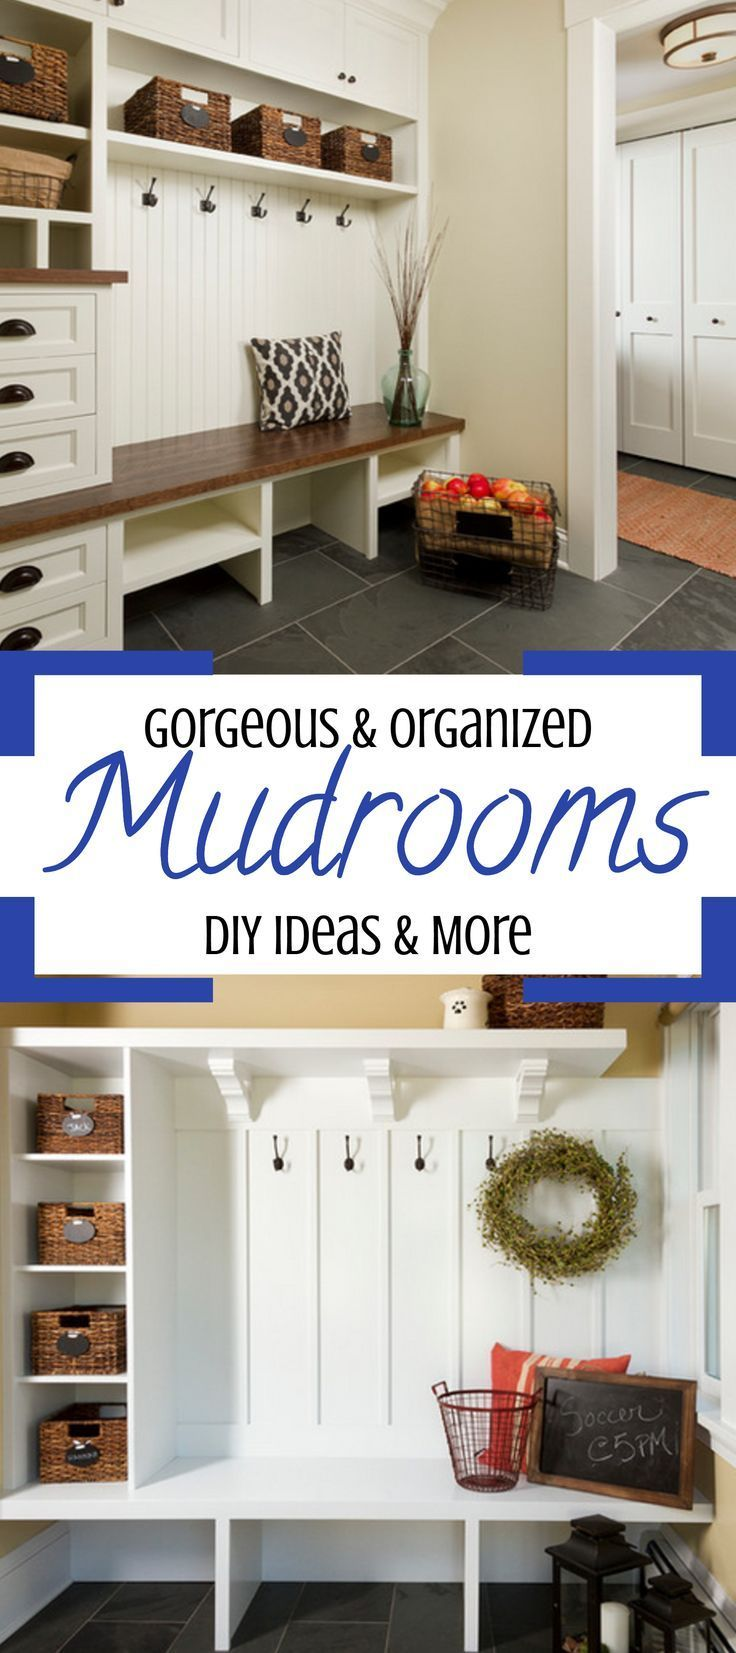 Rustic farmhouse DIY mudroom designs and mud rooms ideas we love… mudroom cubbies, cabinets, baskets, mudroom organization ideas and of course, mudroom benches, too. What great ideas for a mud room in your home.